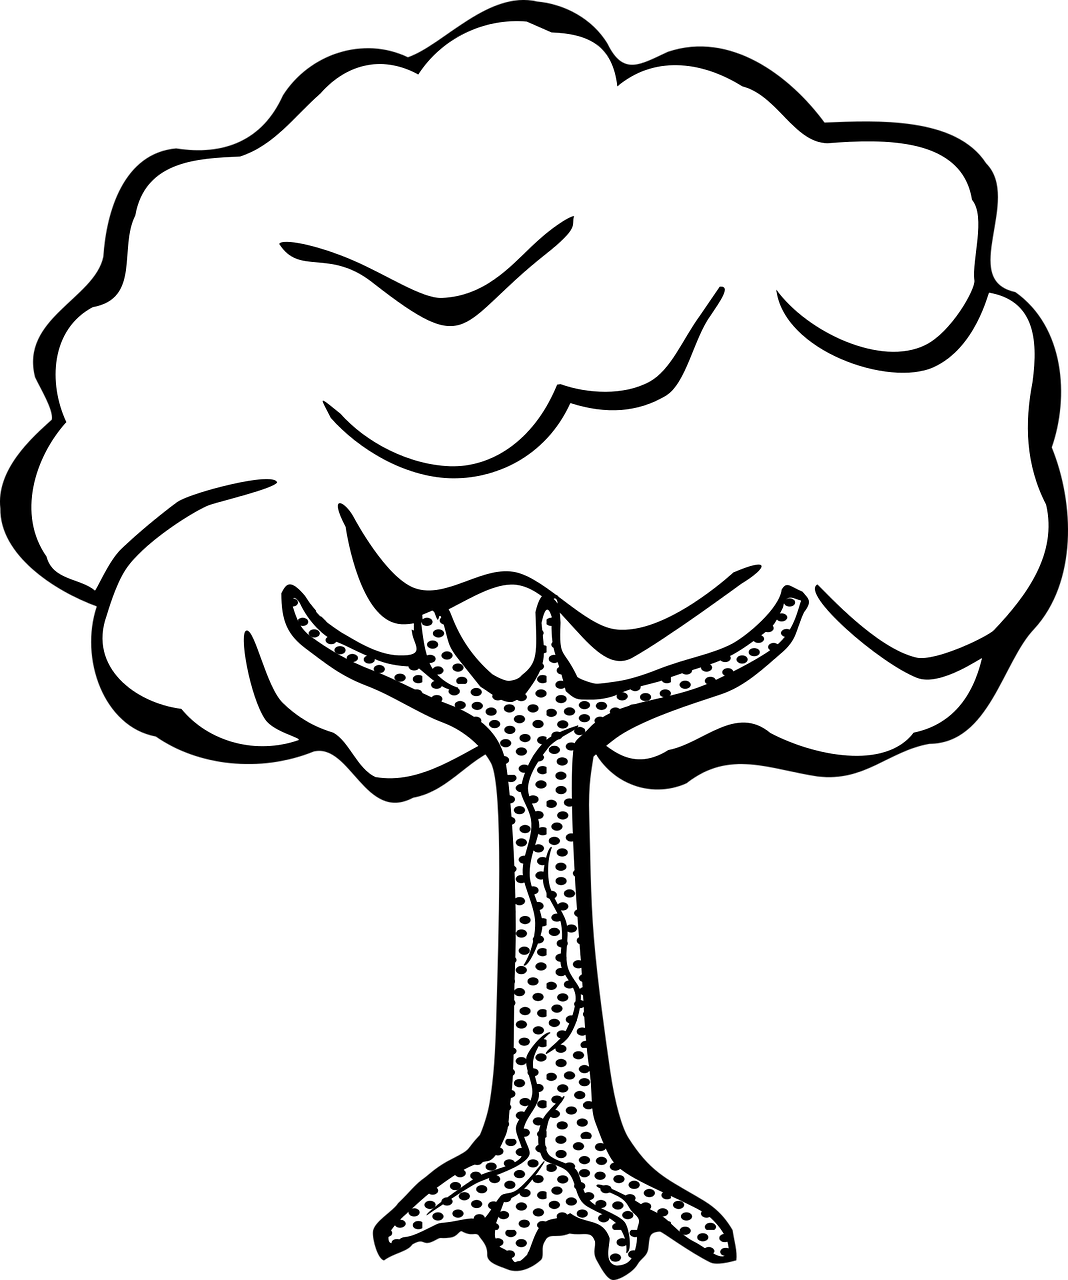 Planting a tree clipart banner black and white Plant Drawing For Kids at GetDrawings.com | Free for personal use ... banner black and white